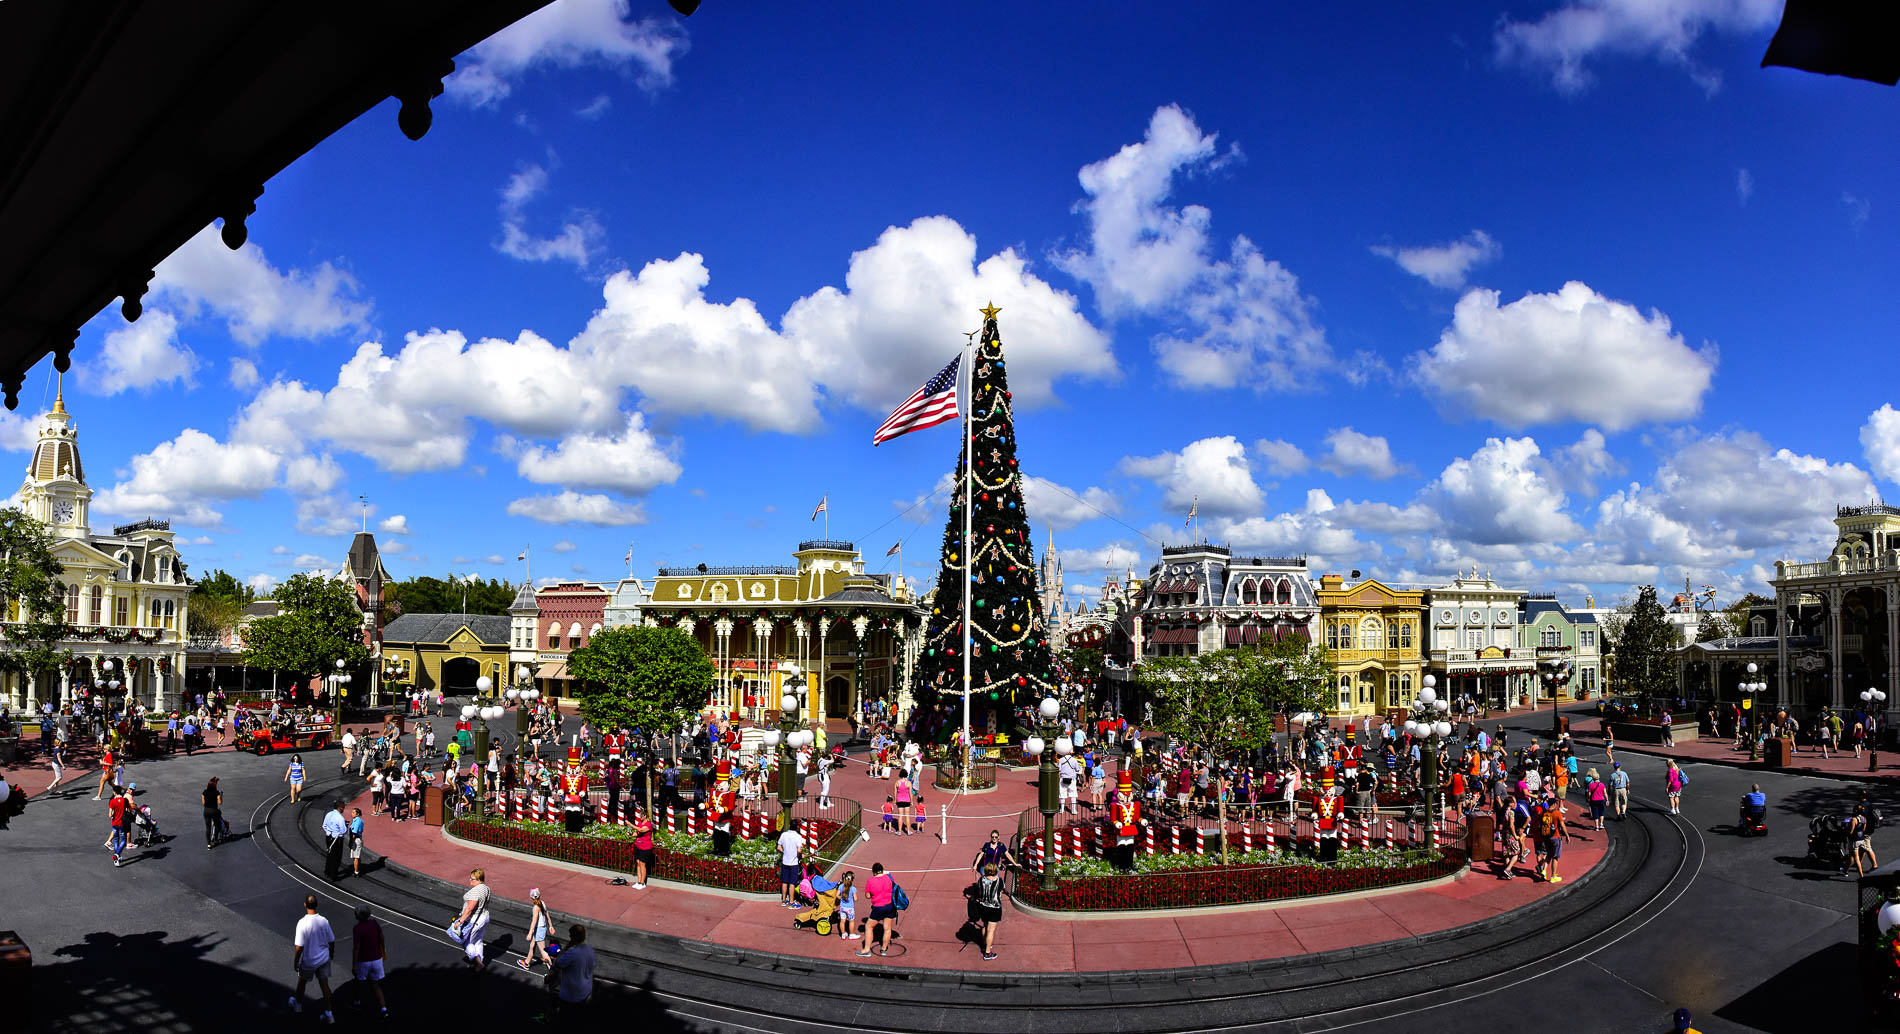 christmas at the magic kingdom shows up right after halloween in a big way with the decorations around the square on main street photo by donald fink